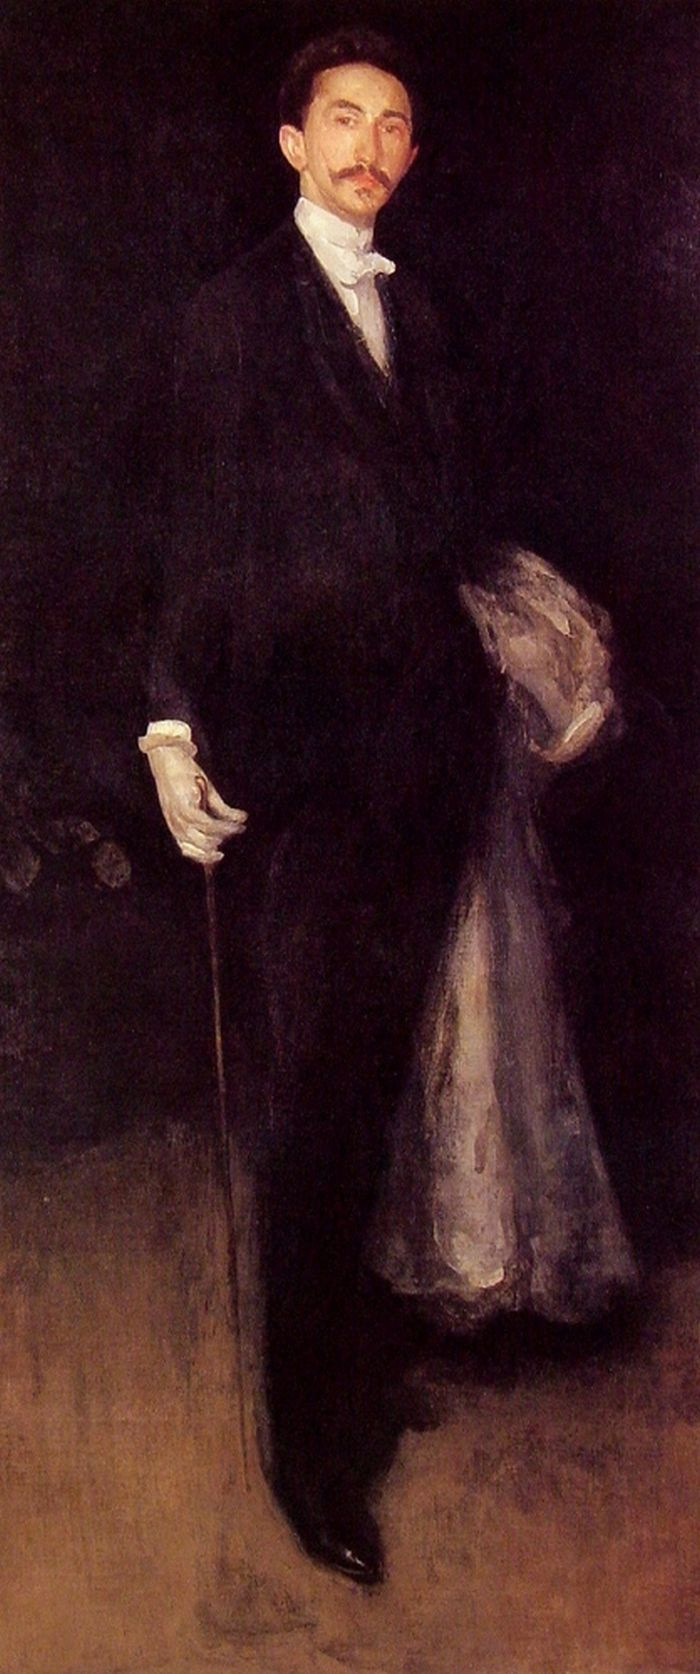 James Abbot McNeill Whistler. Composition in black and gold: a Portrait of Robert de Montesquiou-Fezensac